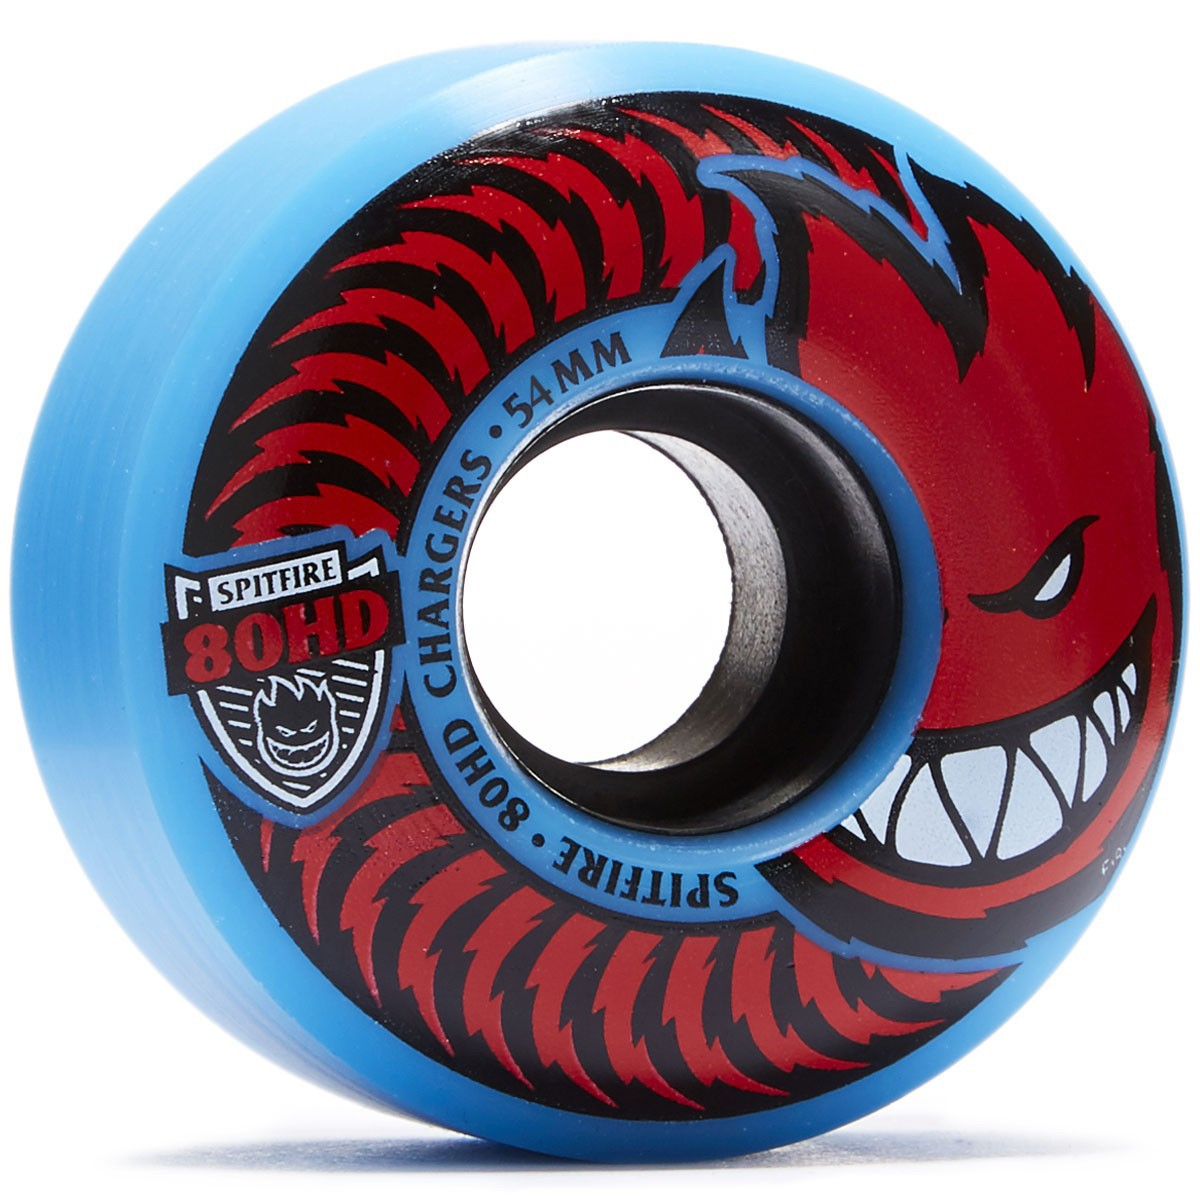 Spitfire 80HD Chargers Classic Skateboard Wheels - Blue/Red - 54mm